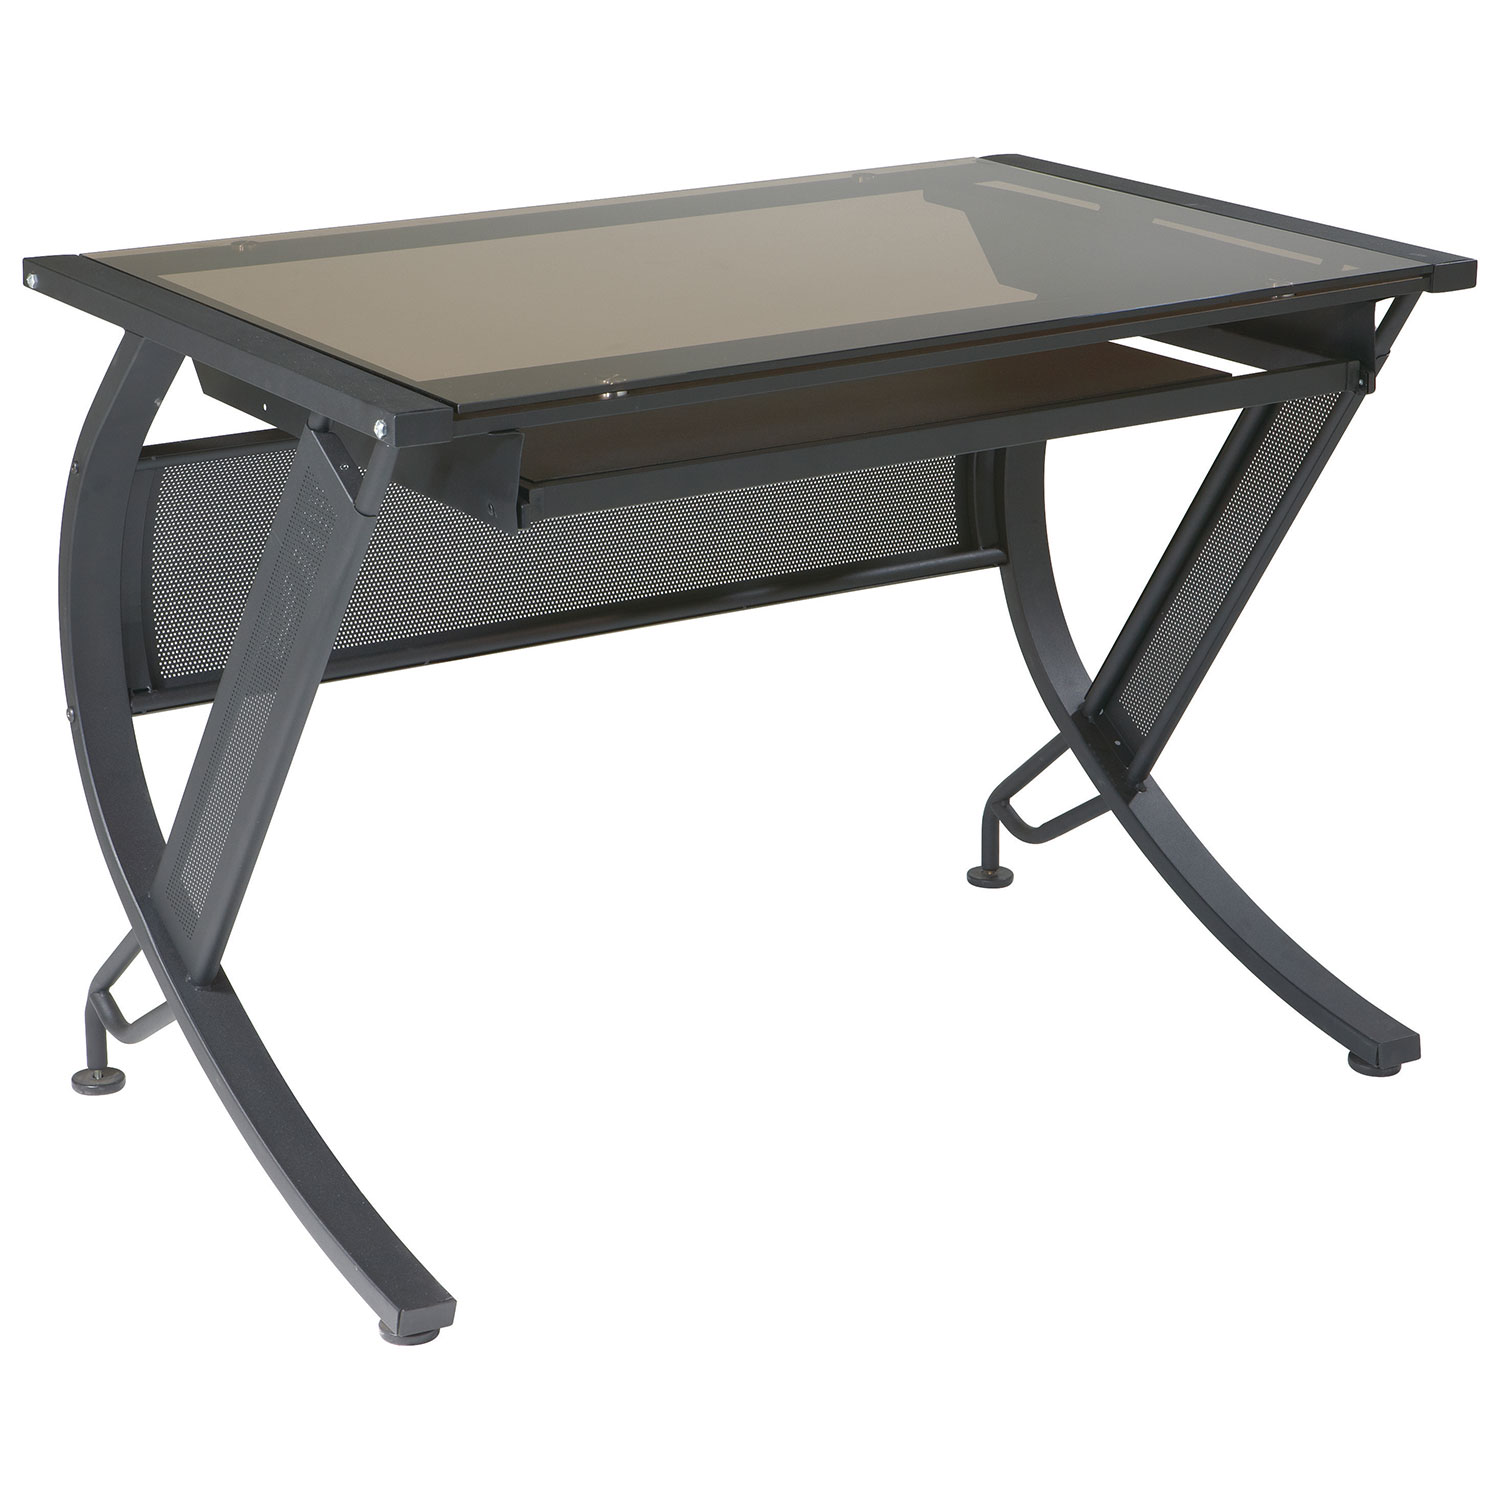 horizon contemporary desk  black  desks  workstations  best  - horizon contemporary desk  black  desks  workstations  best buy canada